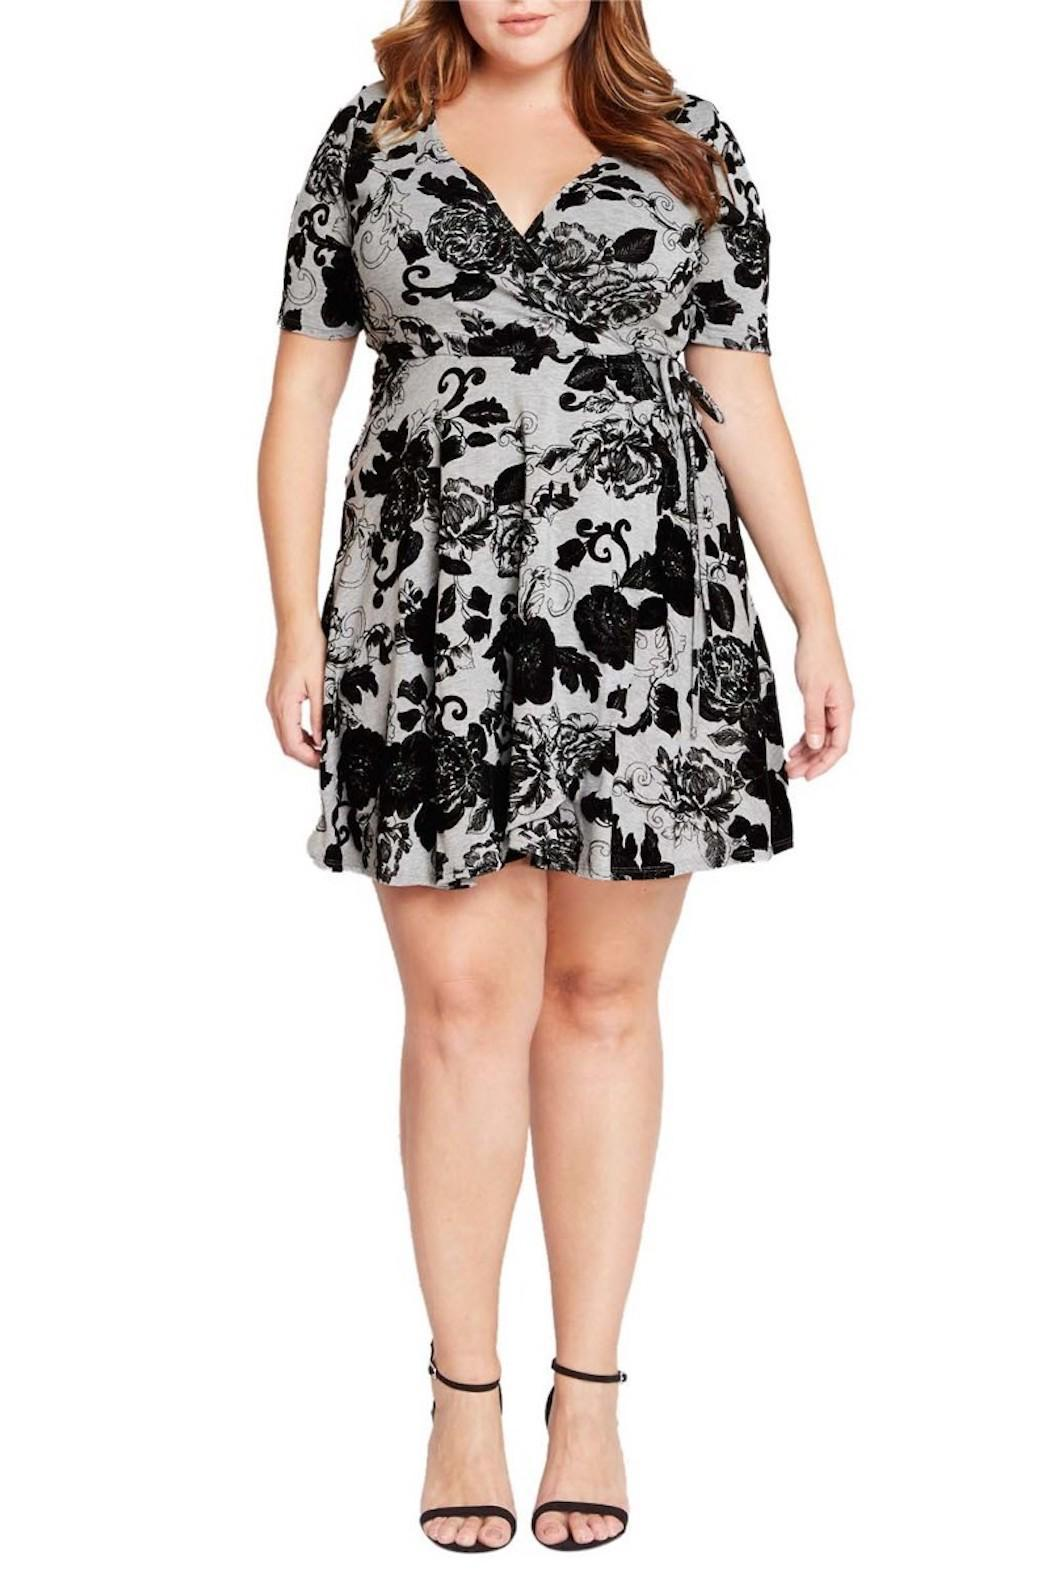 Mai Tai Floral Pattern Dress - Main Image